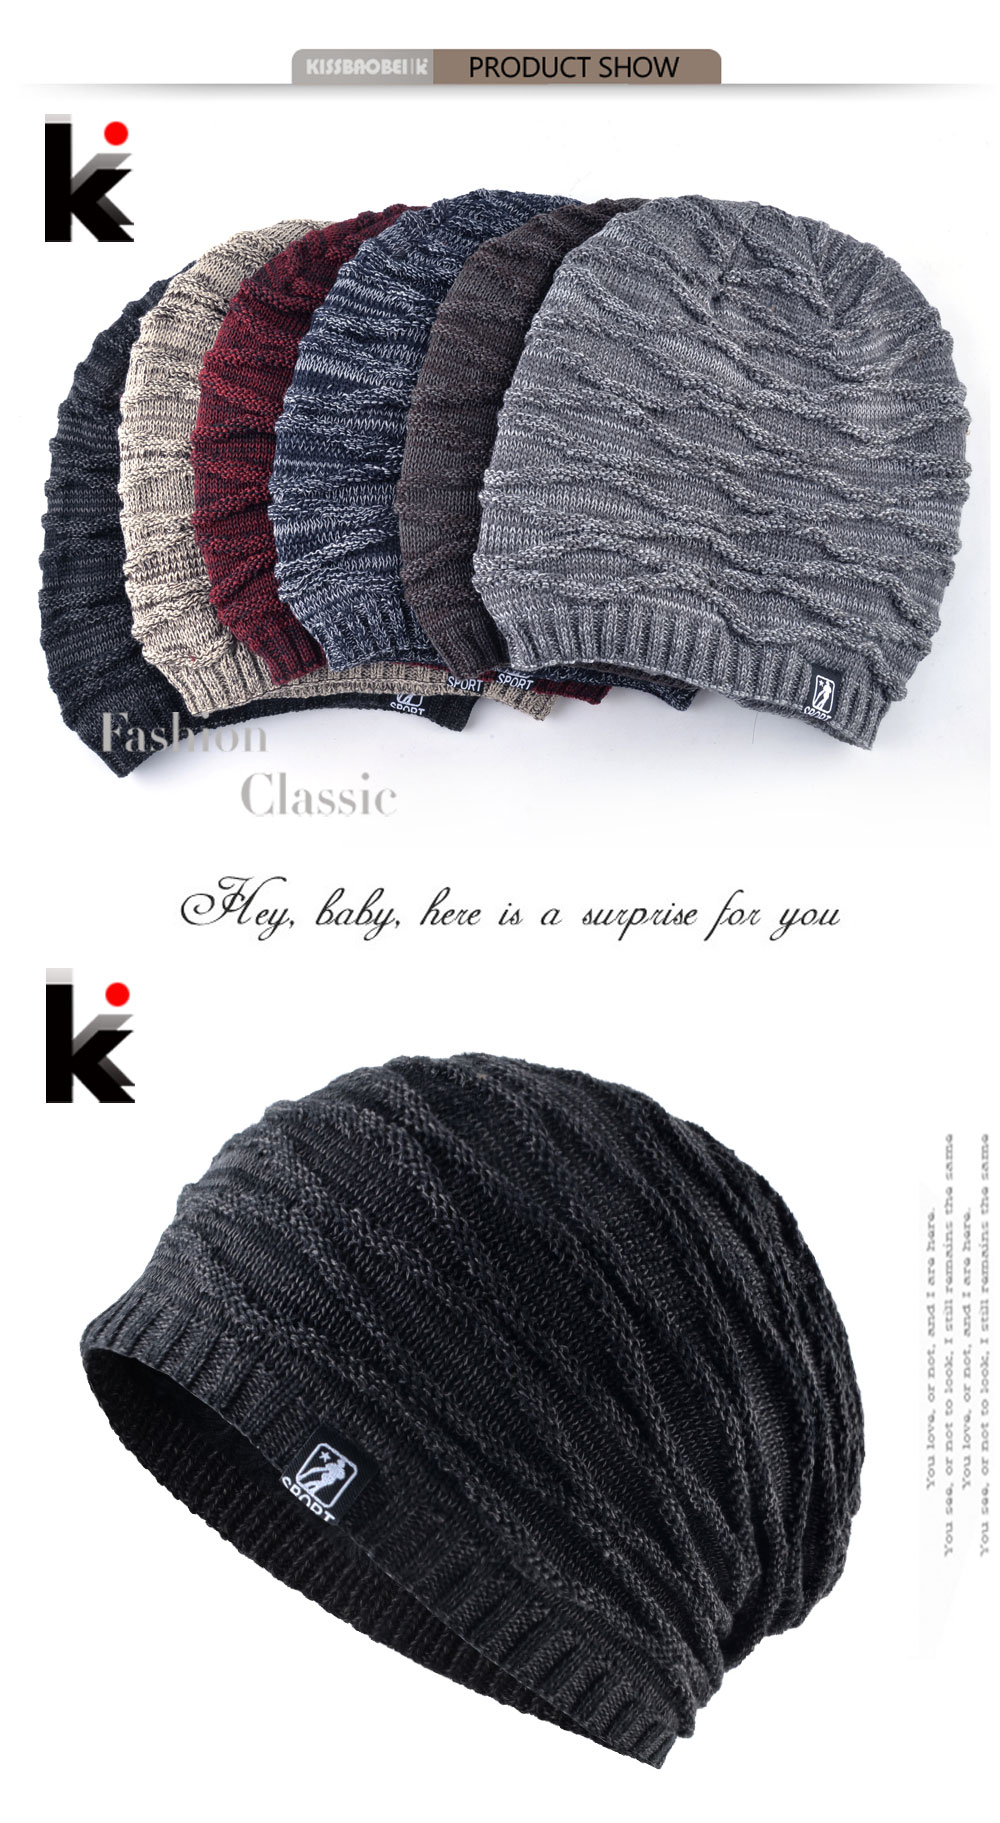 2b0b56eef2a Men s Winter Hat 2018 Fashion Knitted Striped Hats Warm Bonnet Hiver  Outdoor Thick Ski Skullies Beanies Men Knitting Gorras Cap